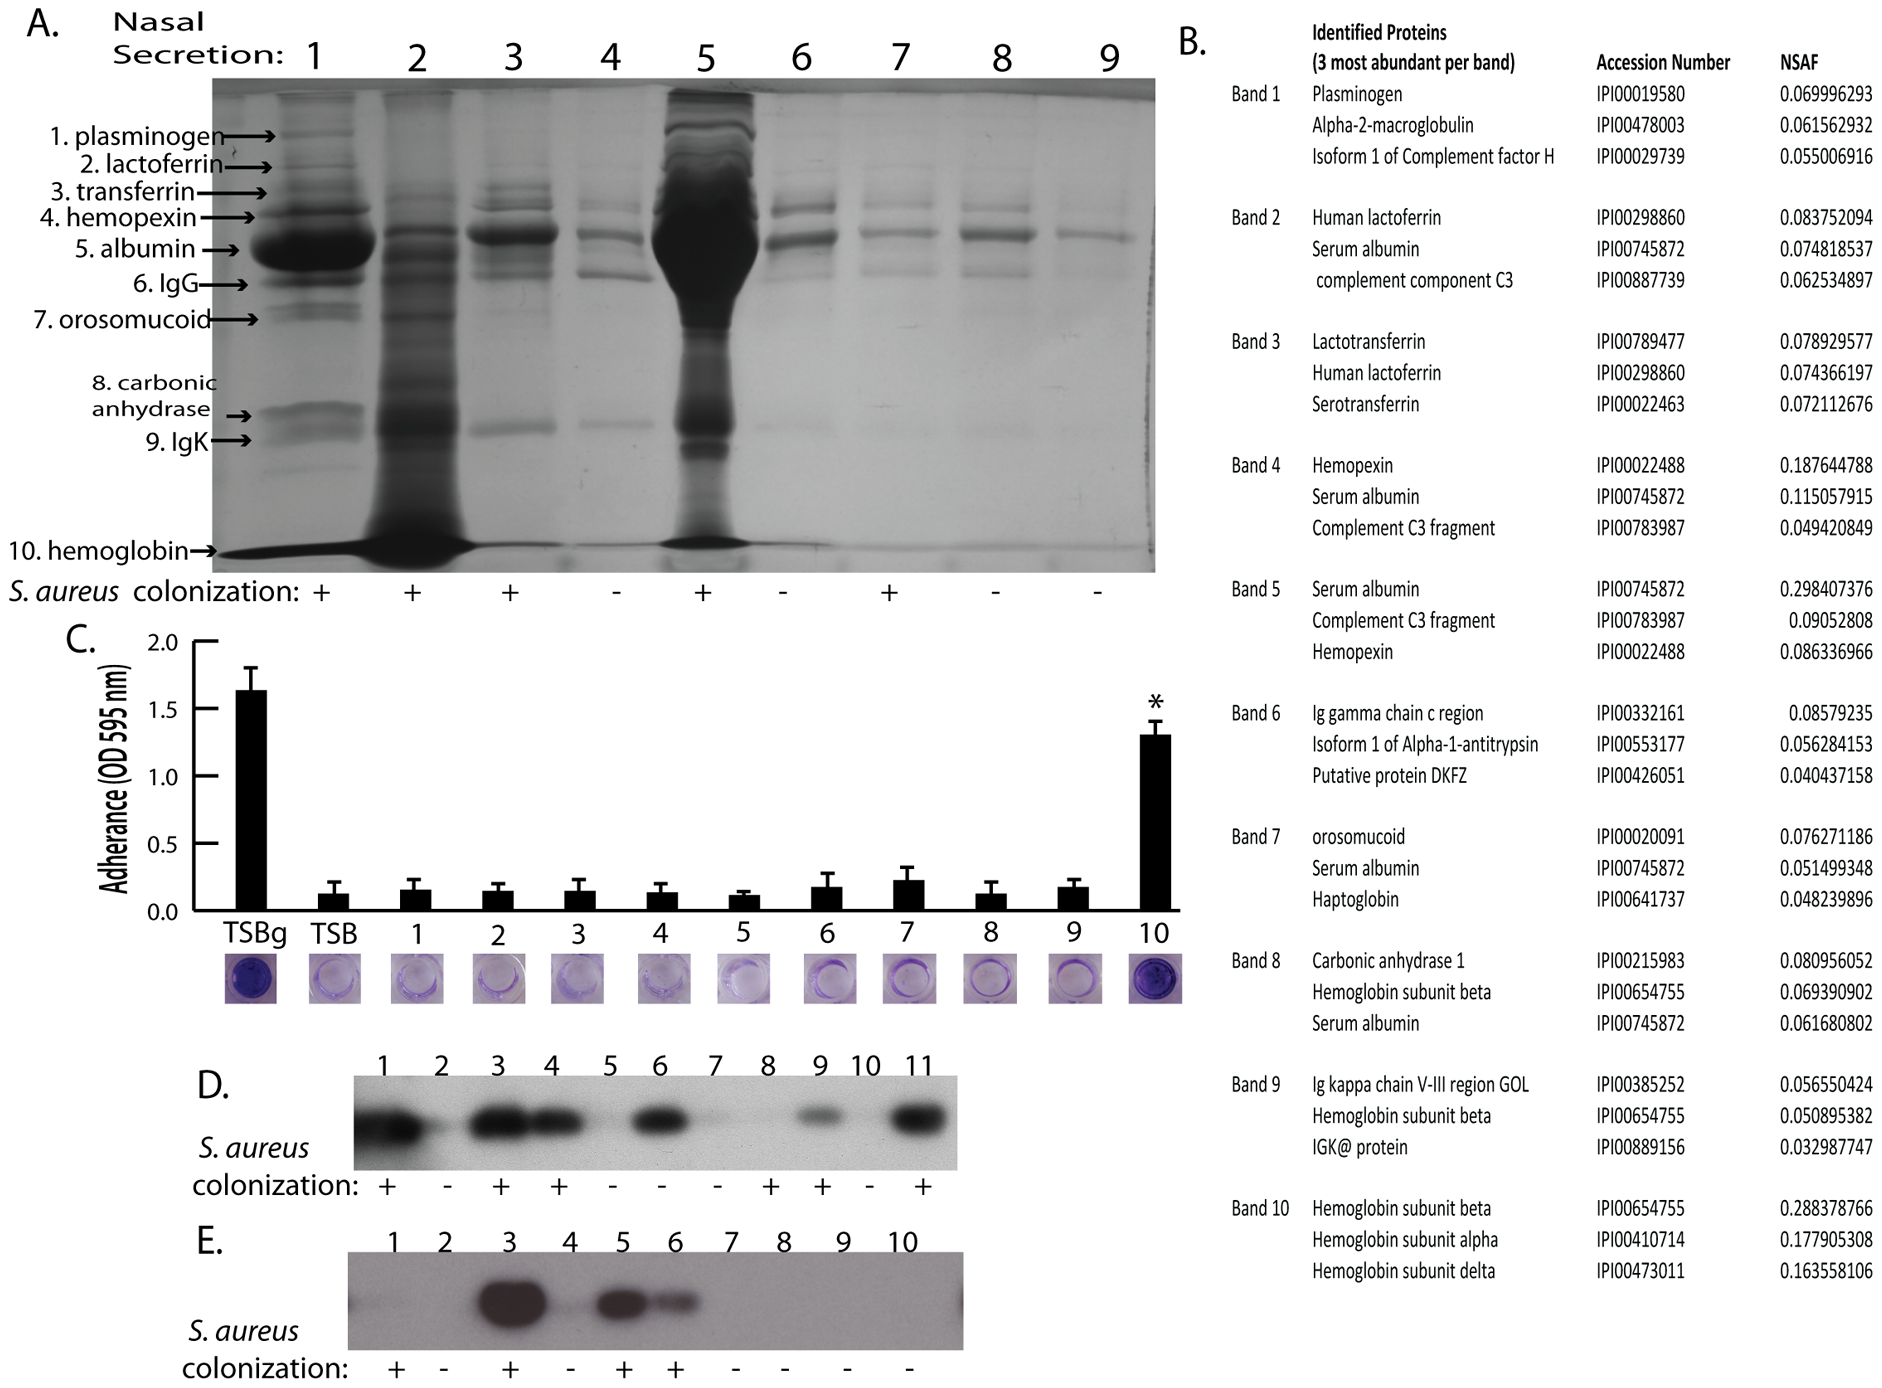 Nasal secretion proteins and their ability to promote <i>S. aureus</i> surface colonization.